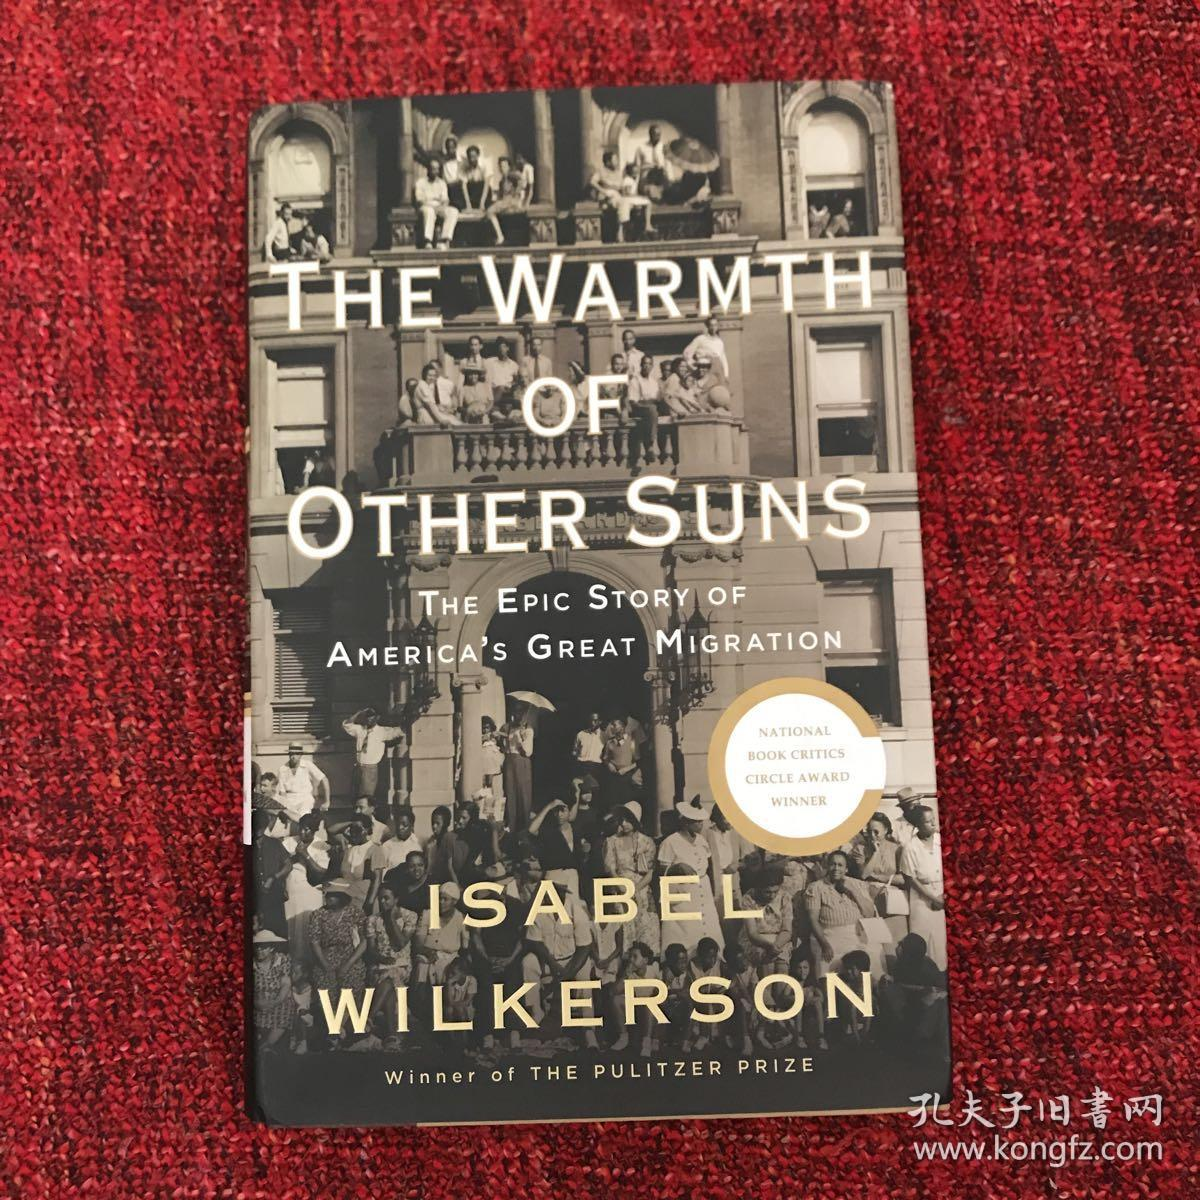 The Warmth of Other Suns:The Epic Story of America's Great Migration